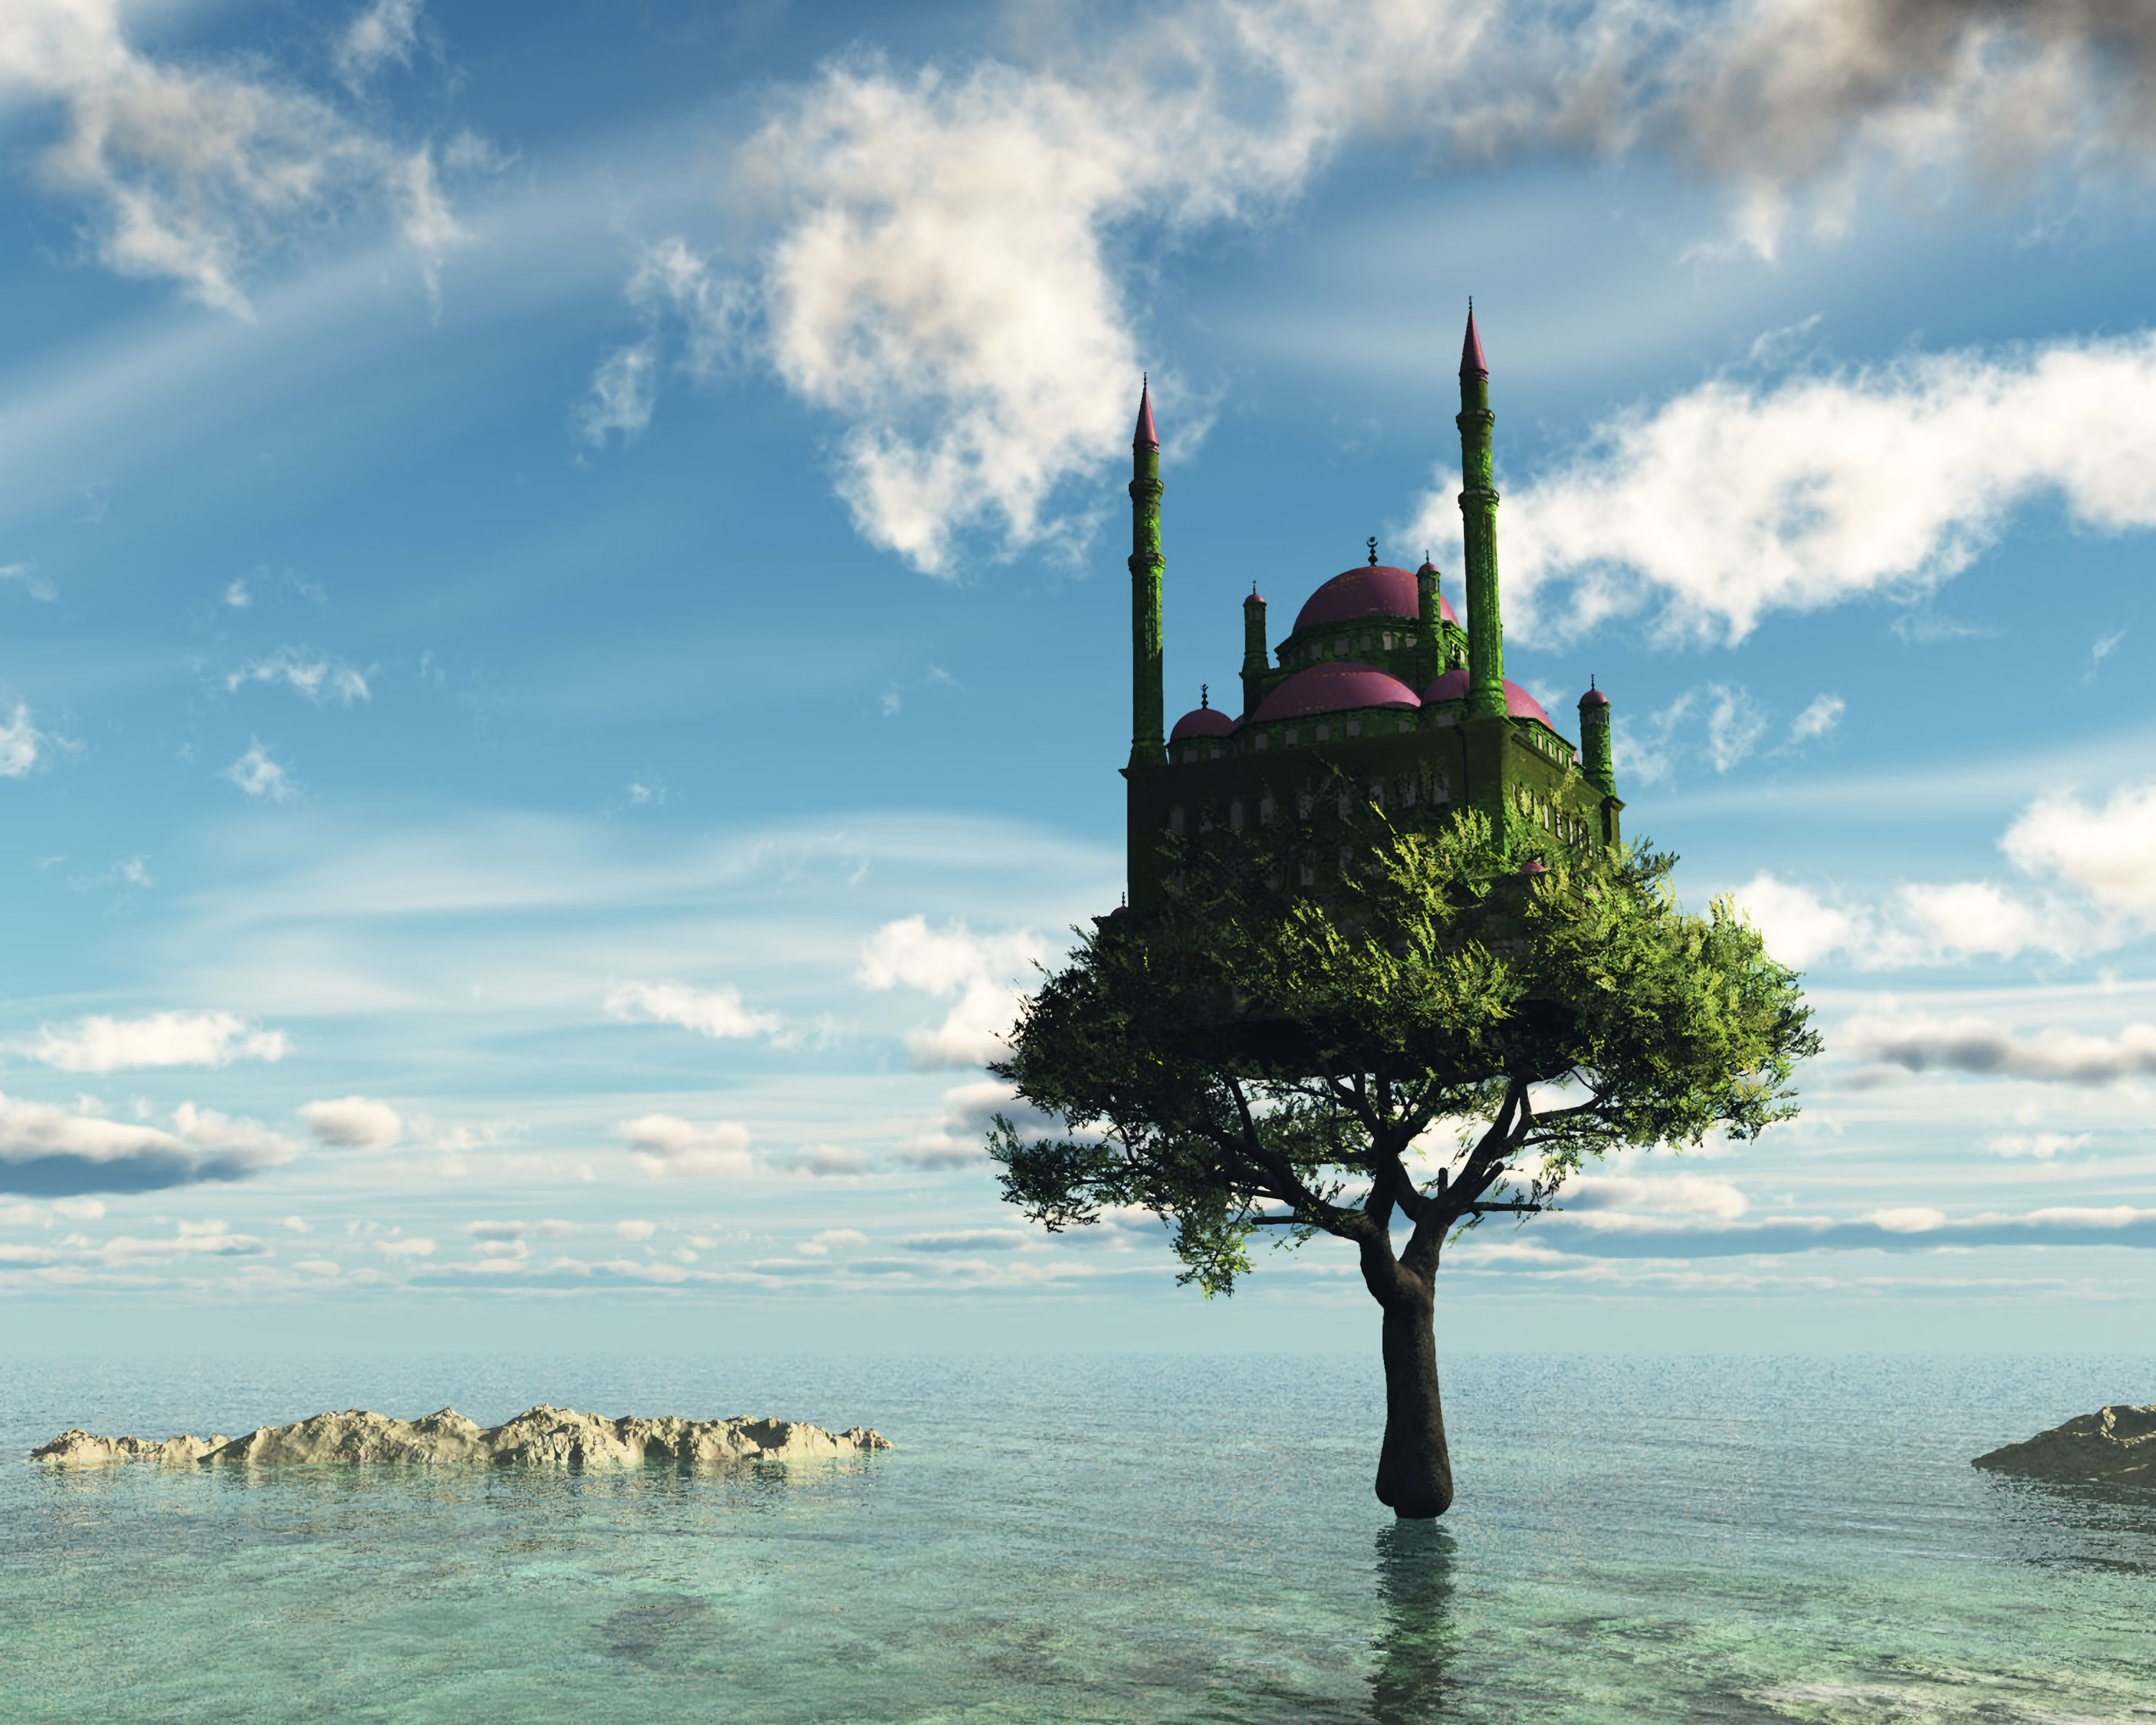 144205 download wallpaper Fantasy, Sea, Lock, Wood, Tree screensavers and pictures for free